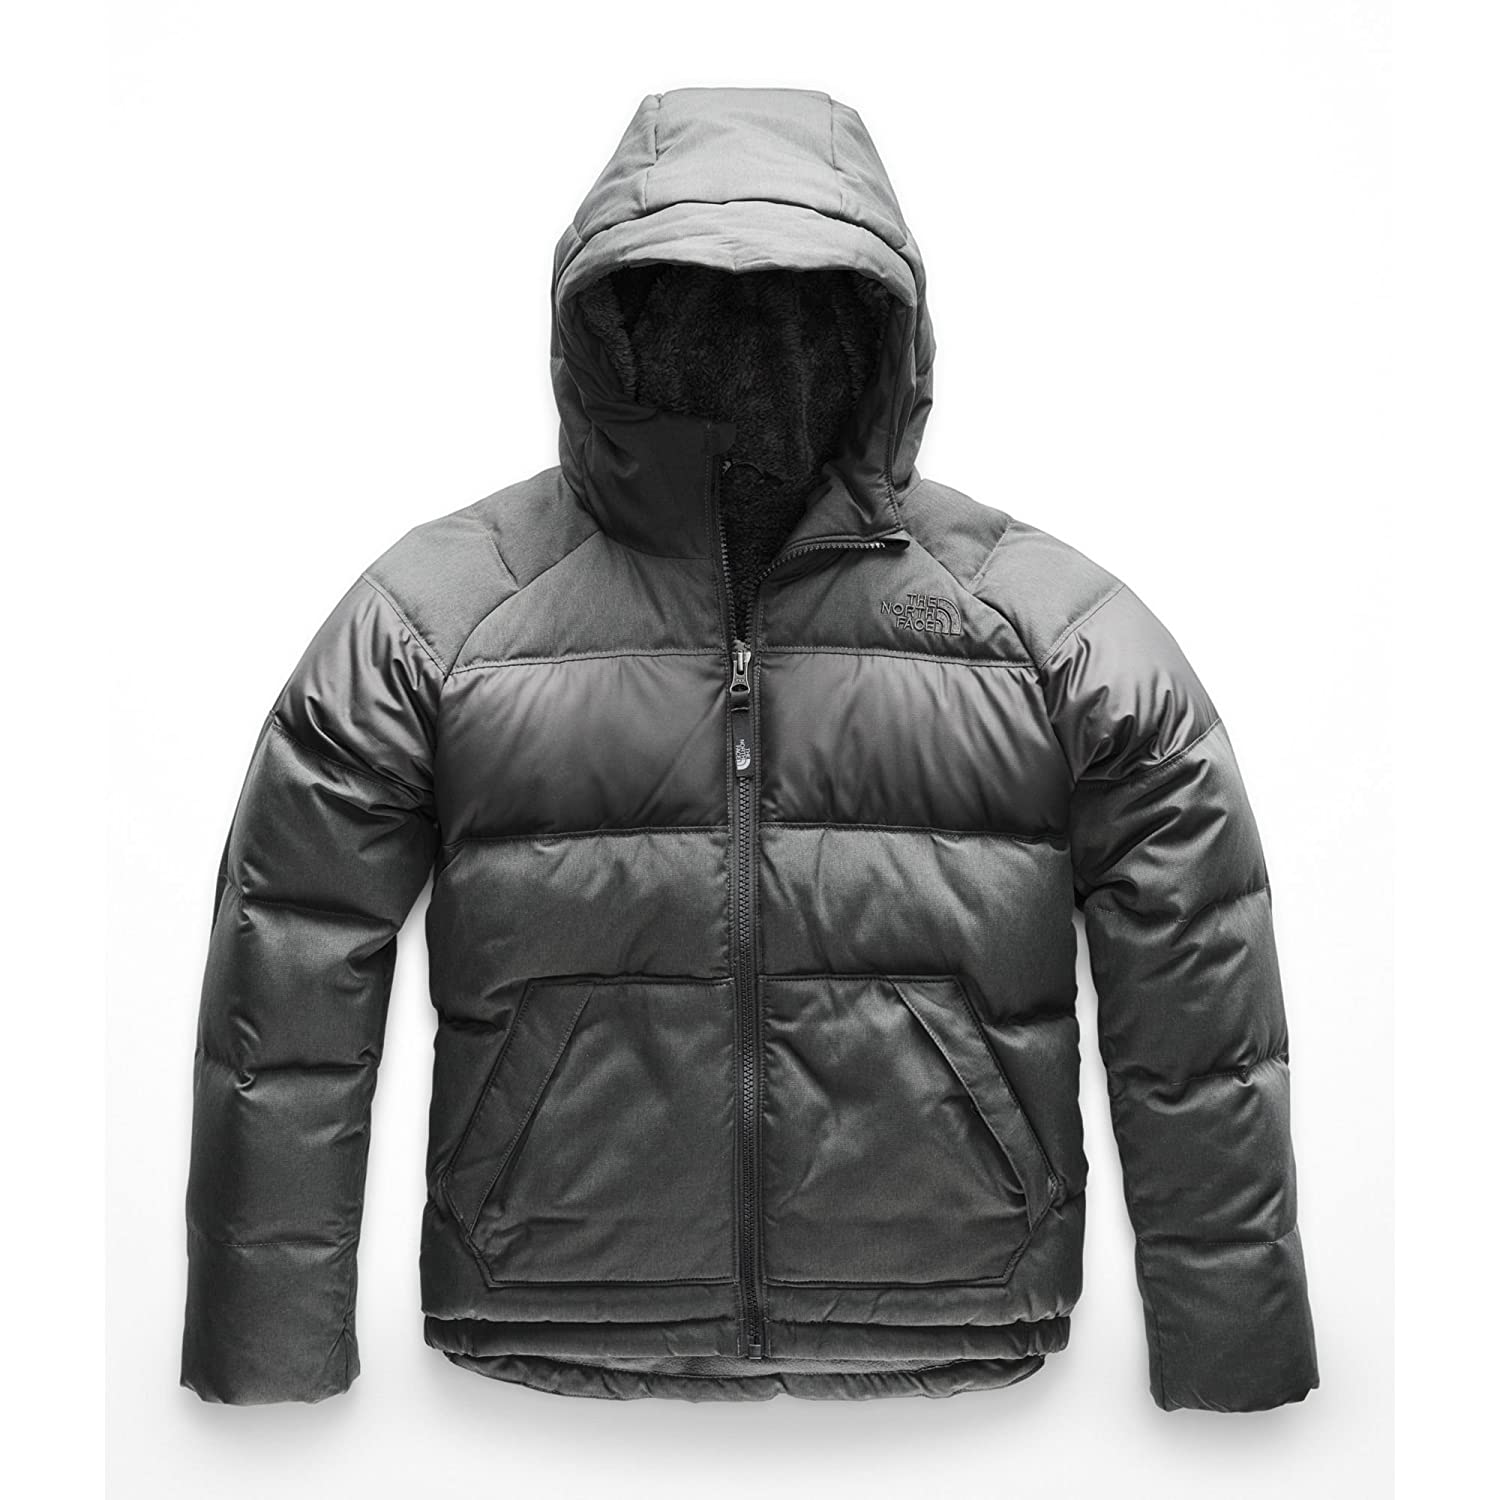 The North Face OUTERWEAR ボーイズ US サイズ: Large カラー: グレー